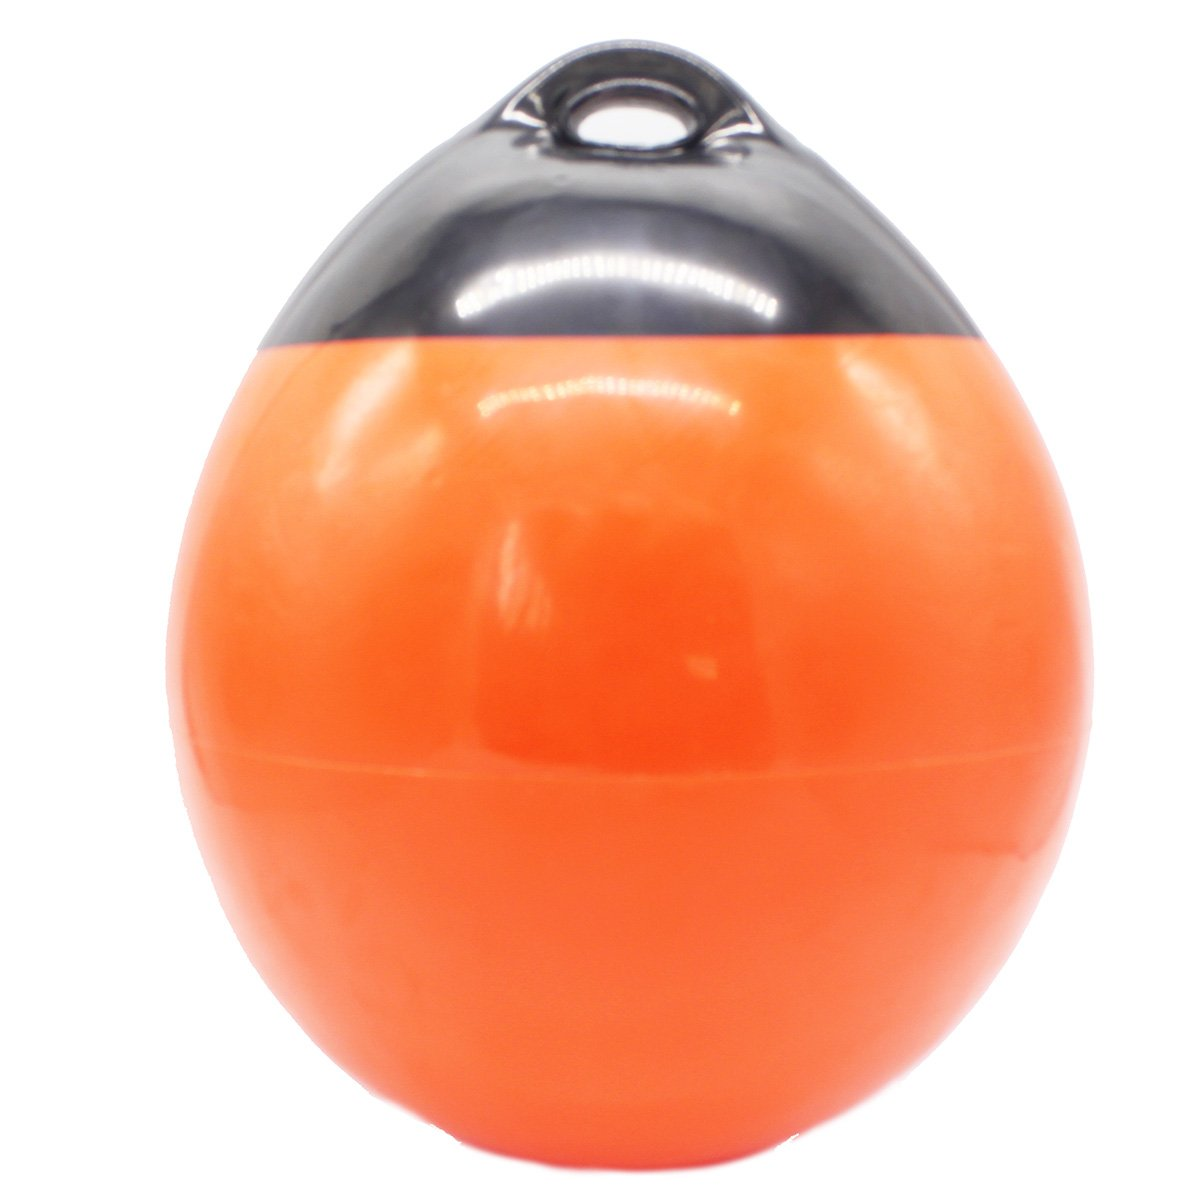 X-Haibei 1 Boat Fender Ball Round Anchor Buoy | Dock Bumper Ball Inflatable Vinyl A-Series Shield Protection Marine Mooring Buoy Orange, A25 D 9.8 H 12.2INCH